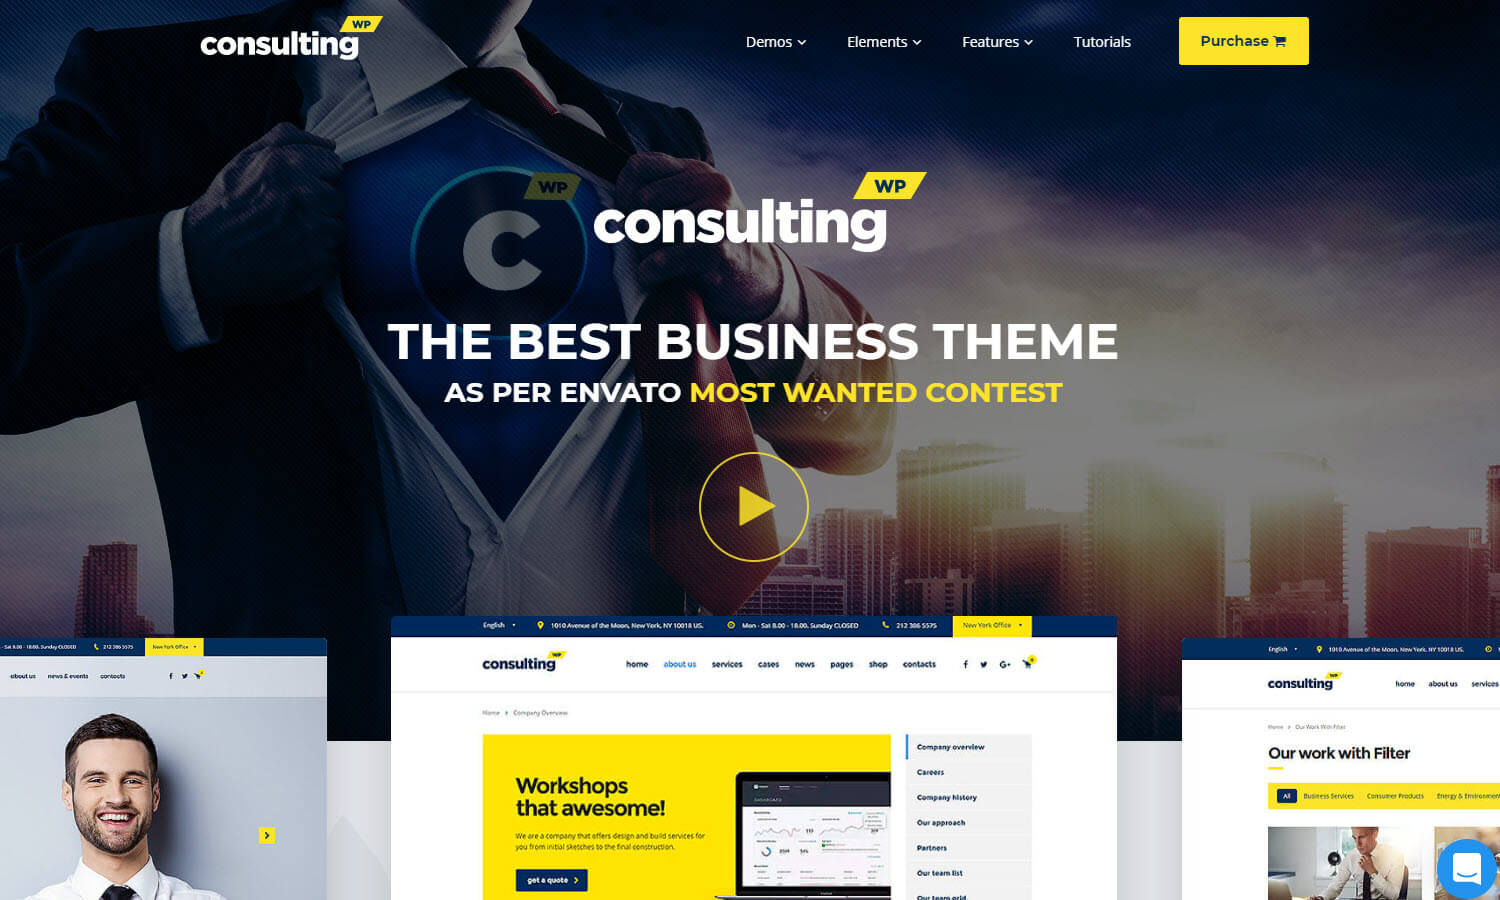 Consulting screenshot